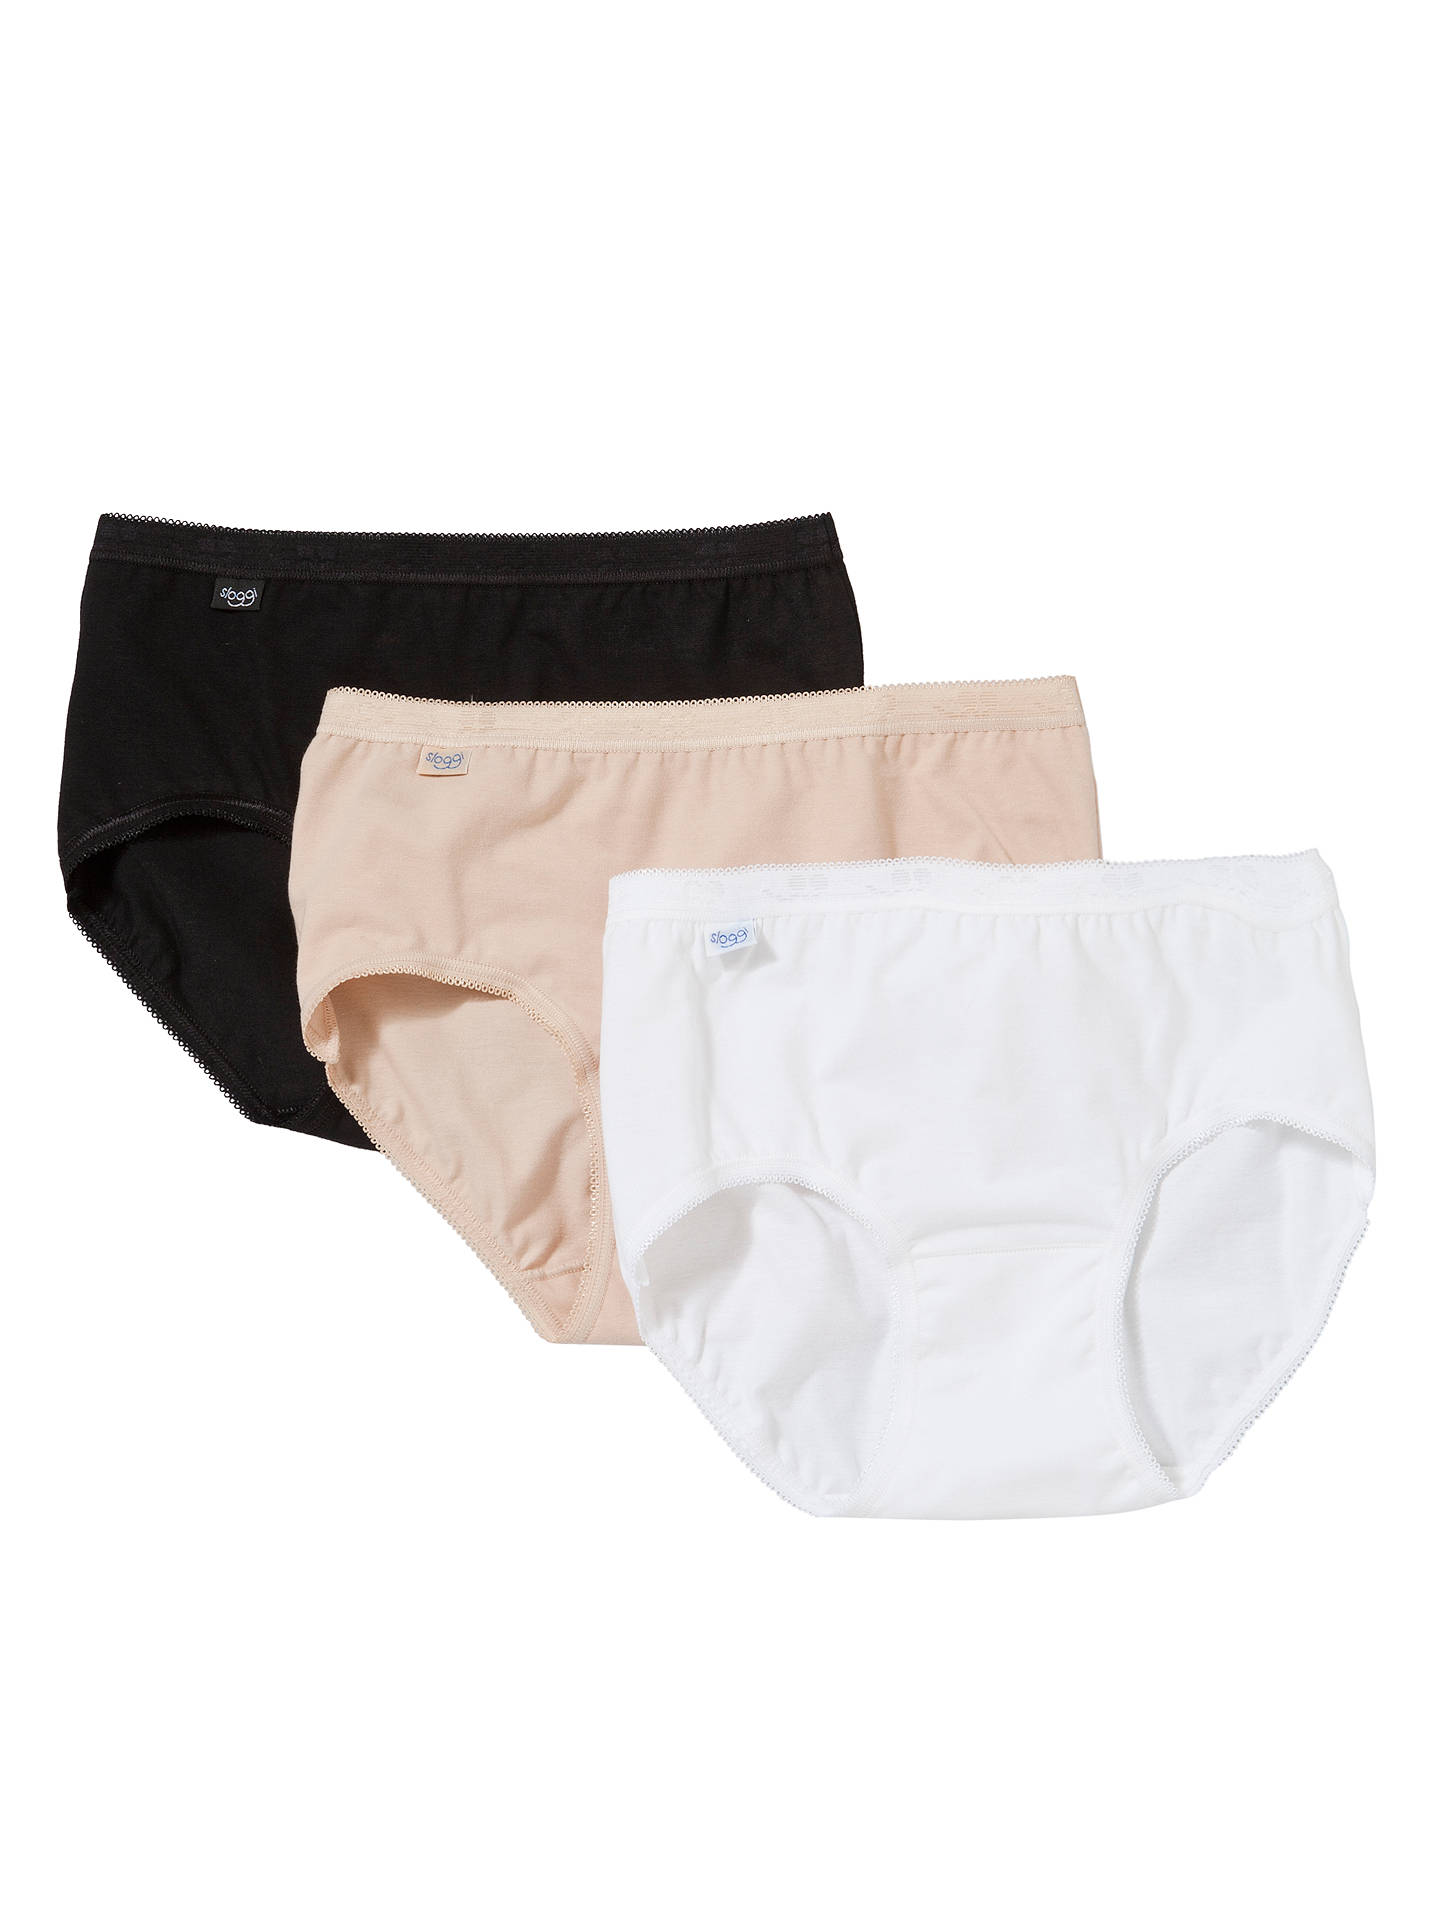 White or Skin Cotton Rich Maxi Brief *Special 4 Pack Black Womens Sloggi Basic